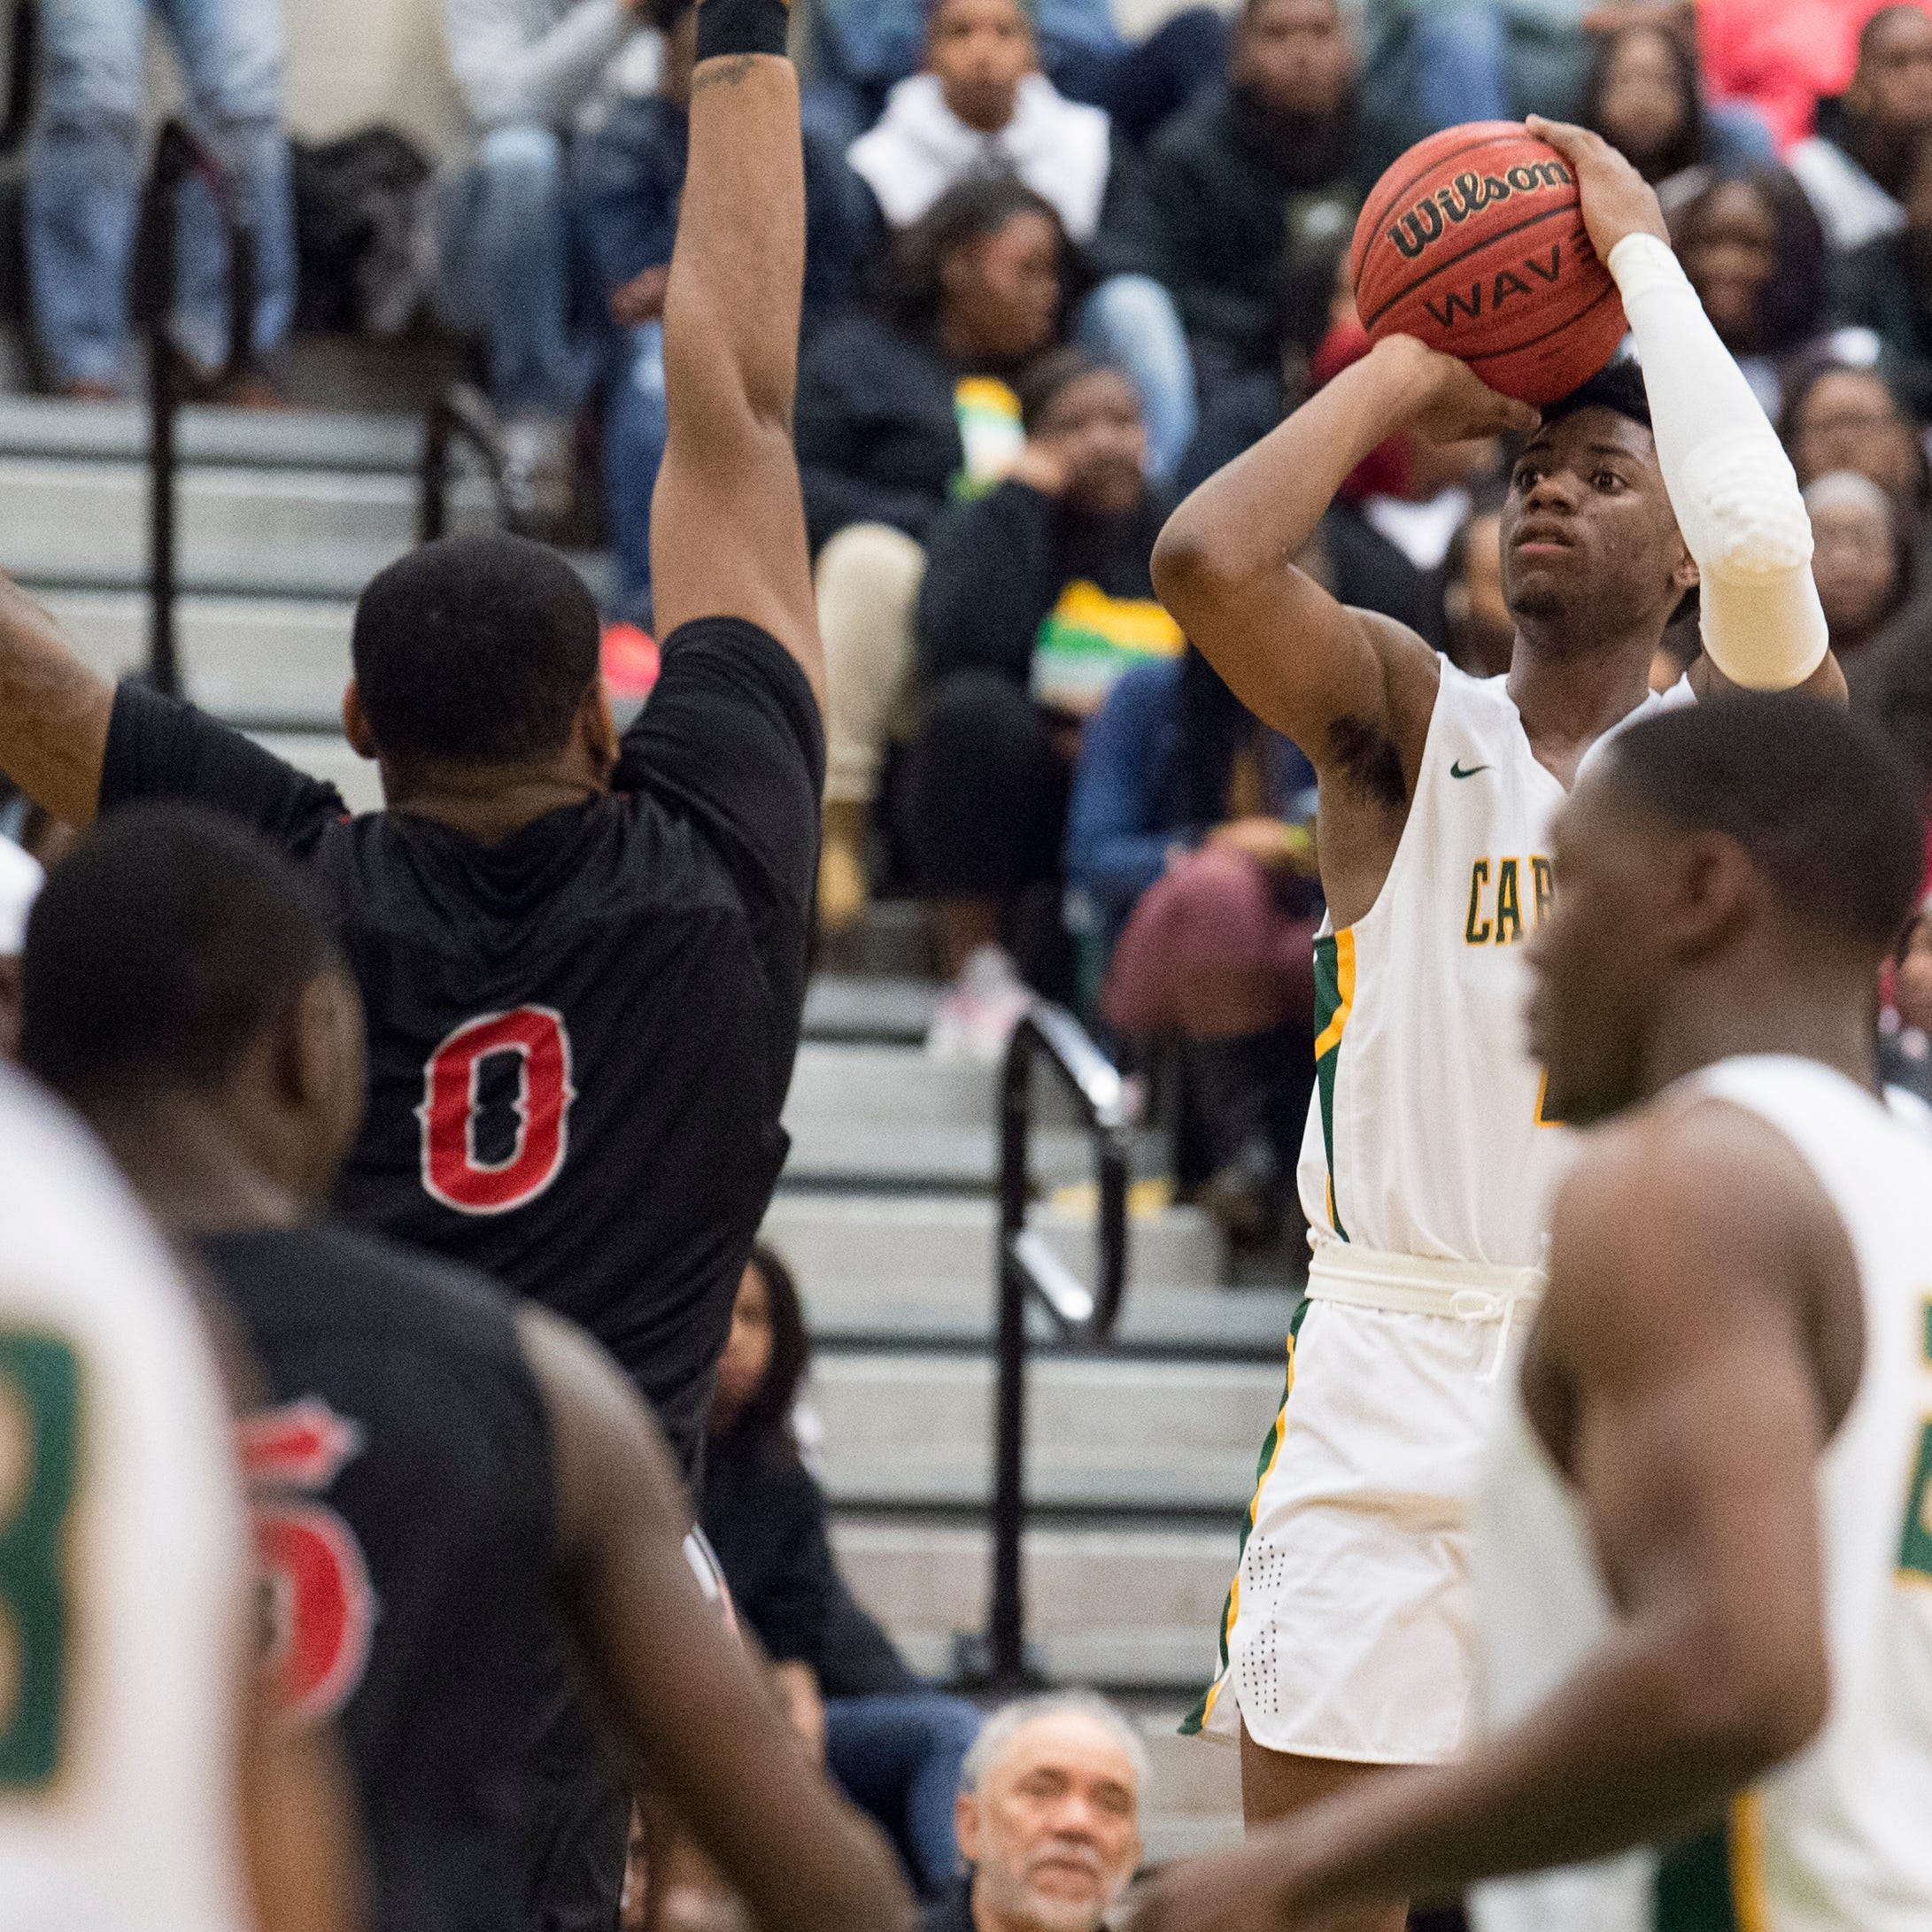 2019 Alabama high school All-State basketball